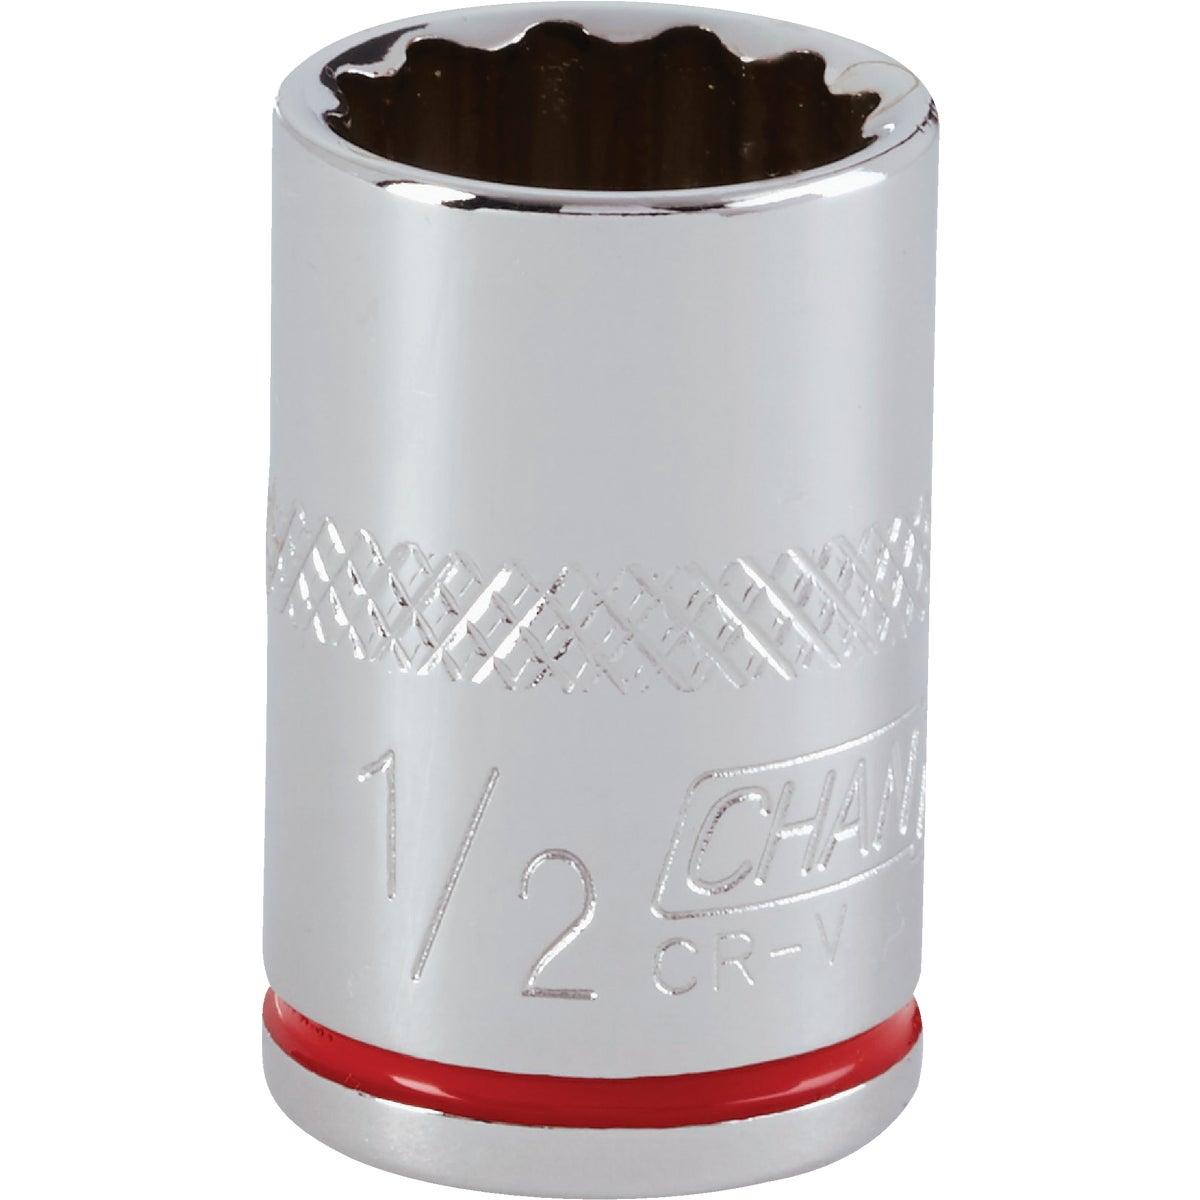 "1/2"" 3/8 DRIVE SOCKET - 305189 by Do it Best"